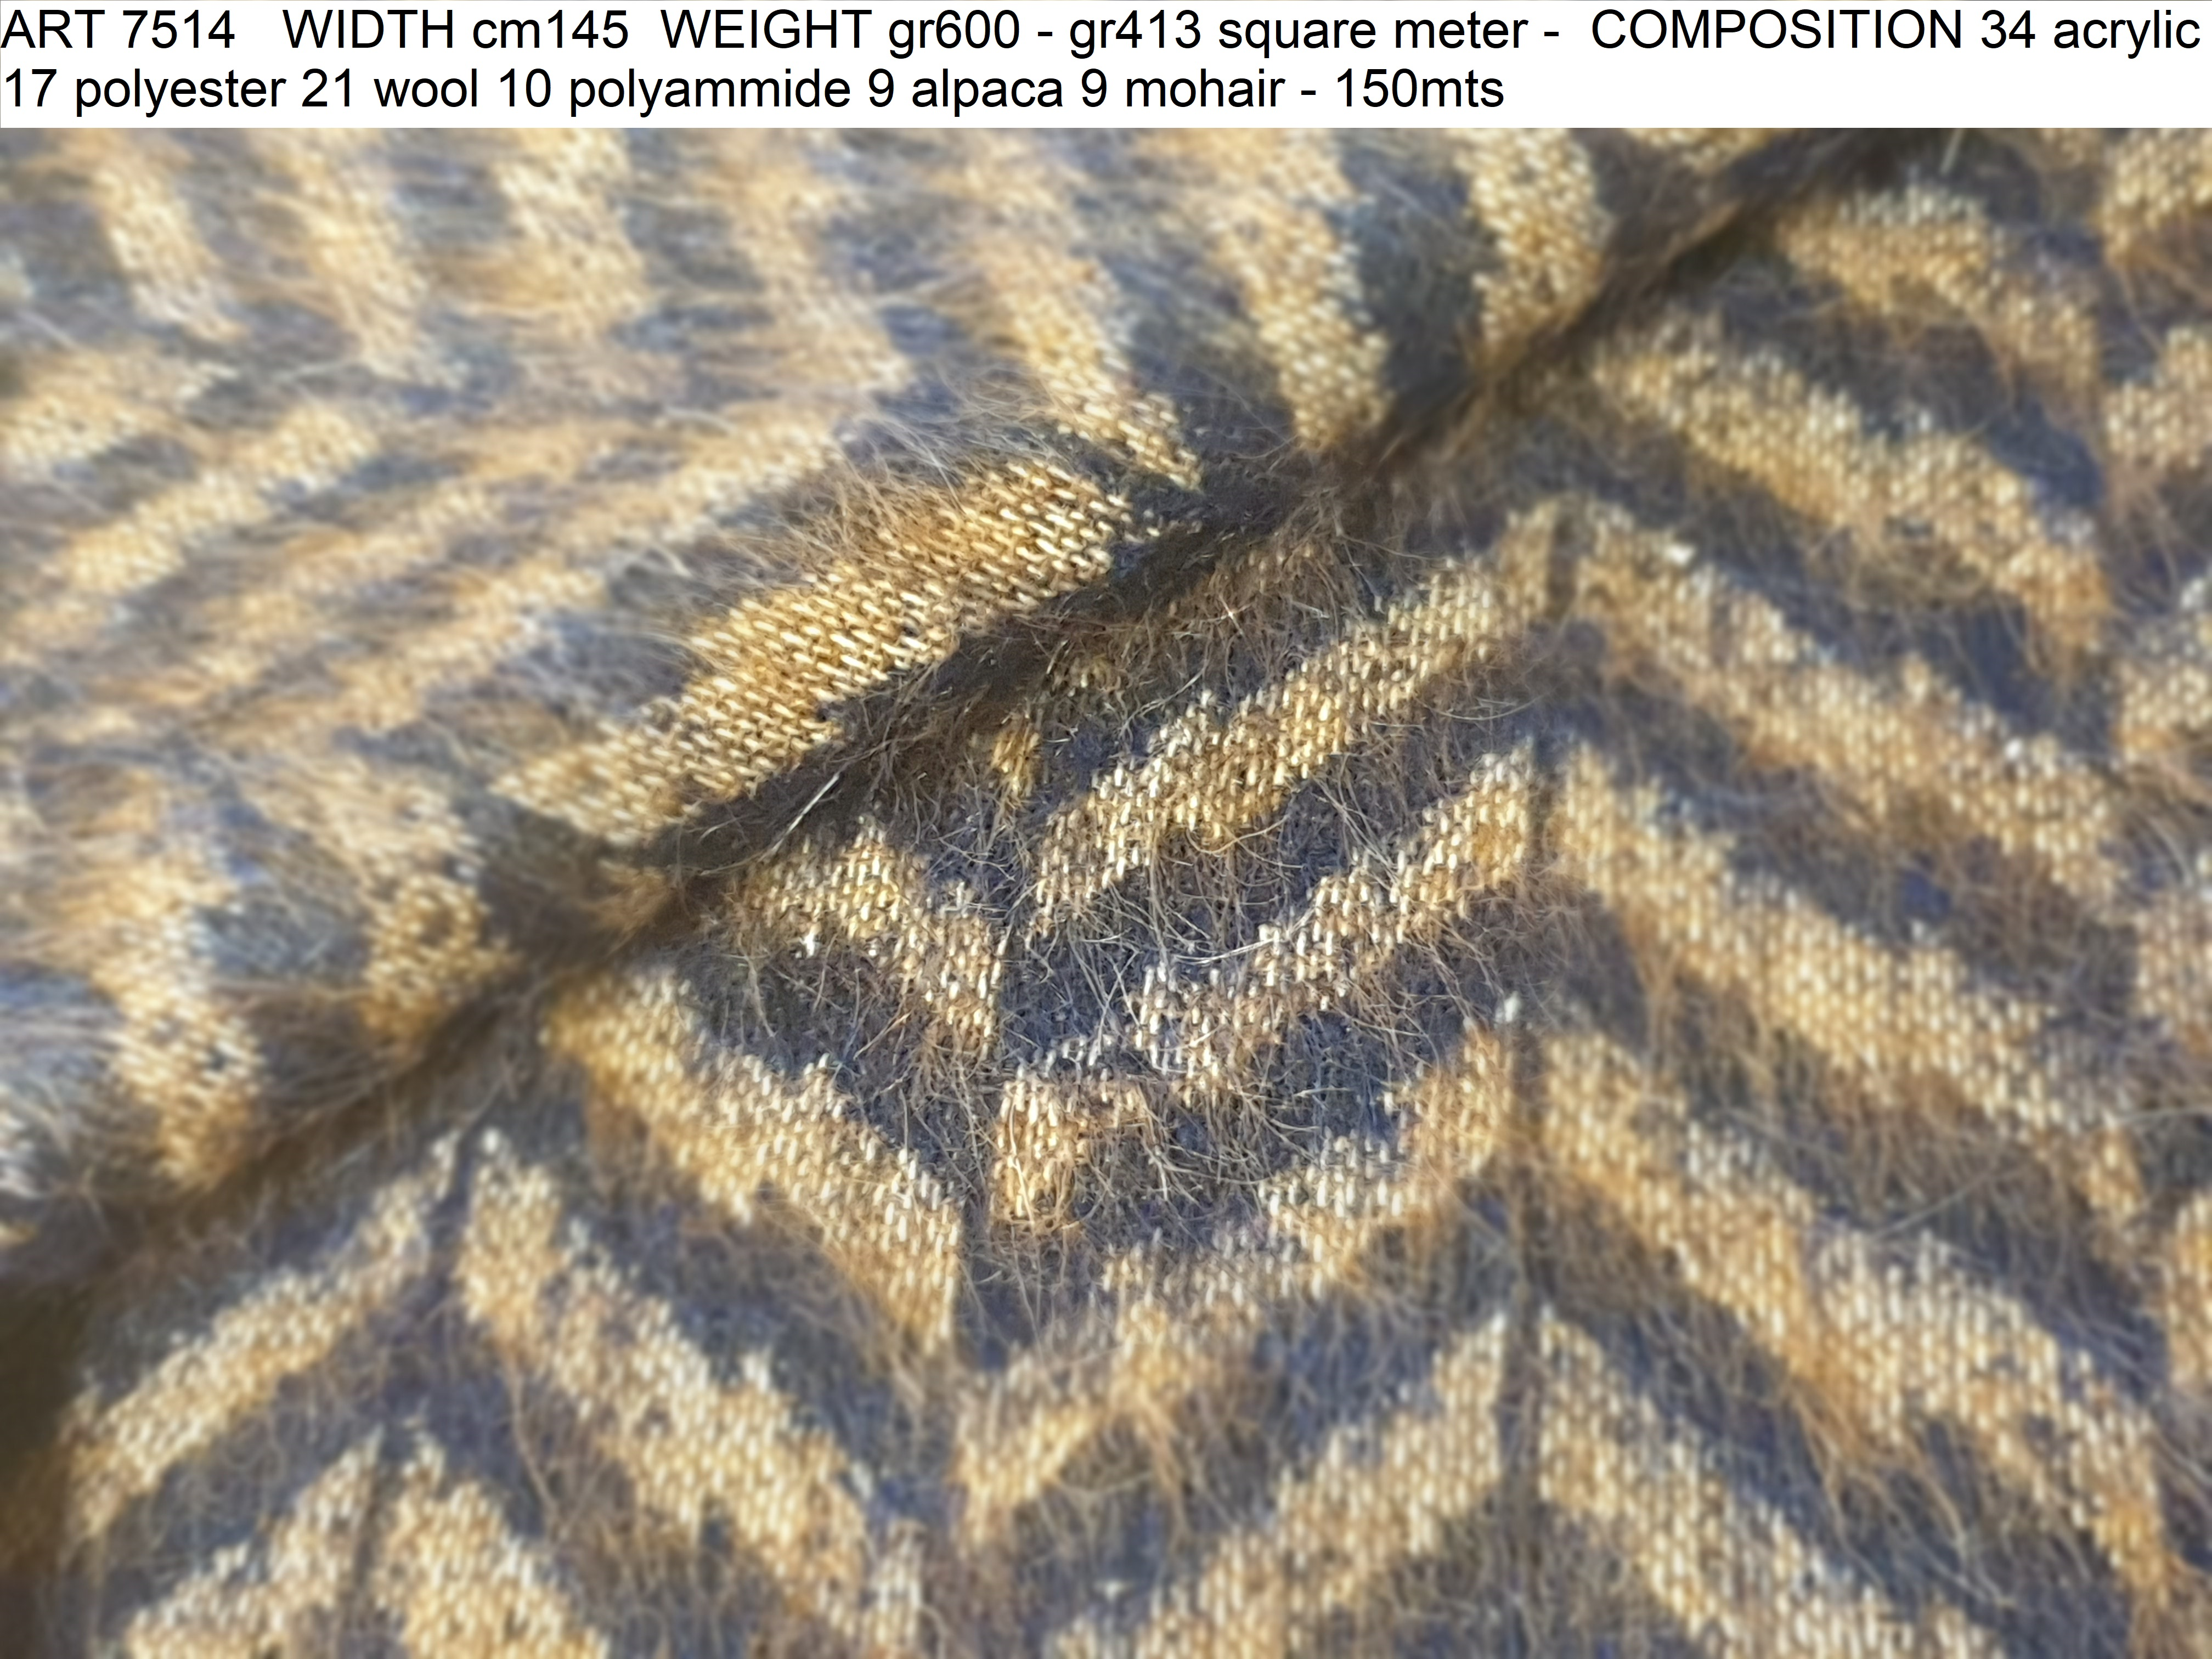 ART 7514 WIDTH cm145 WEIGHT gr600 - gr413 square meter - COMPOSITION 34 acrylic 17 polyester 21 wool 10 polyammide 9 alpaca 9 mohair - 150mts